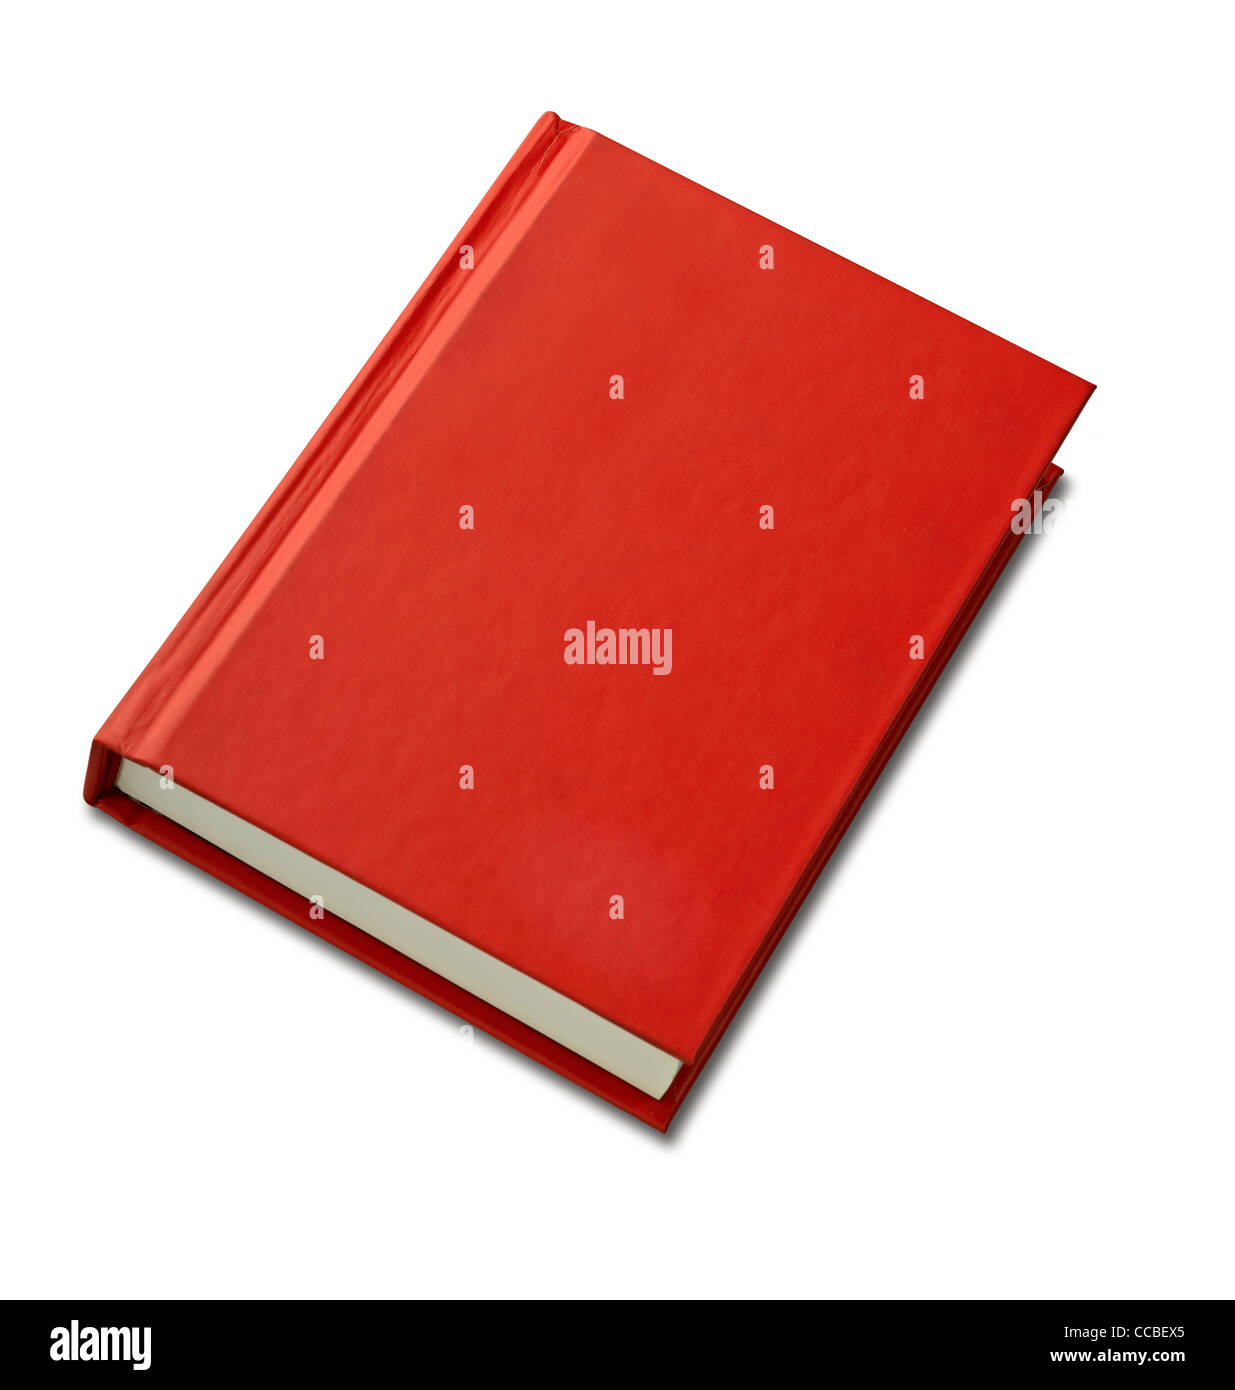 Blank red hardback book cover ready for text or graphic isolated on white - Stock Image